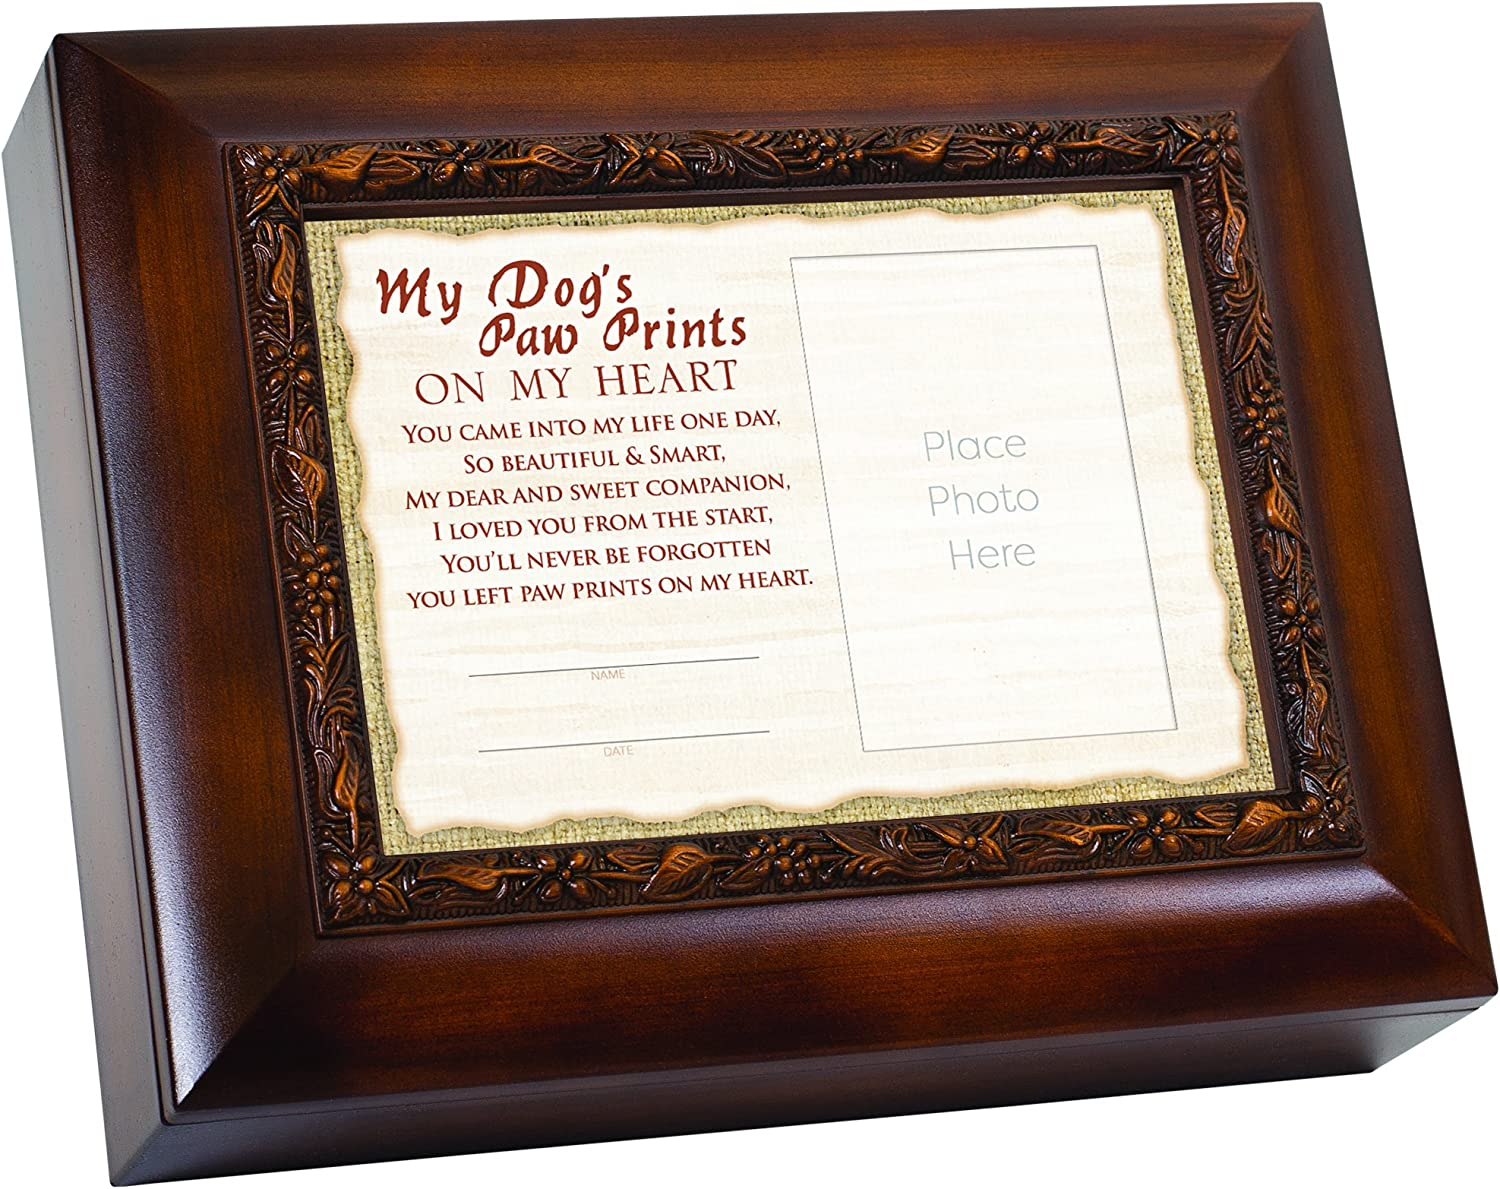 Cottage Garden My Dog's Paw Prints On My Heart Memorial 9.5 x 8 inch Wood Finish Ashes Memorial Urn Box